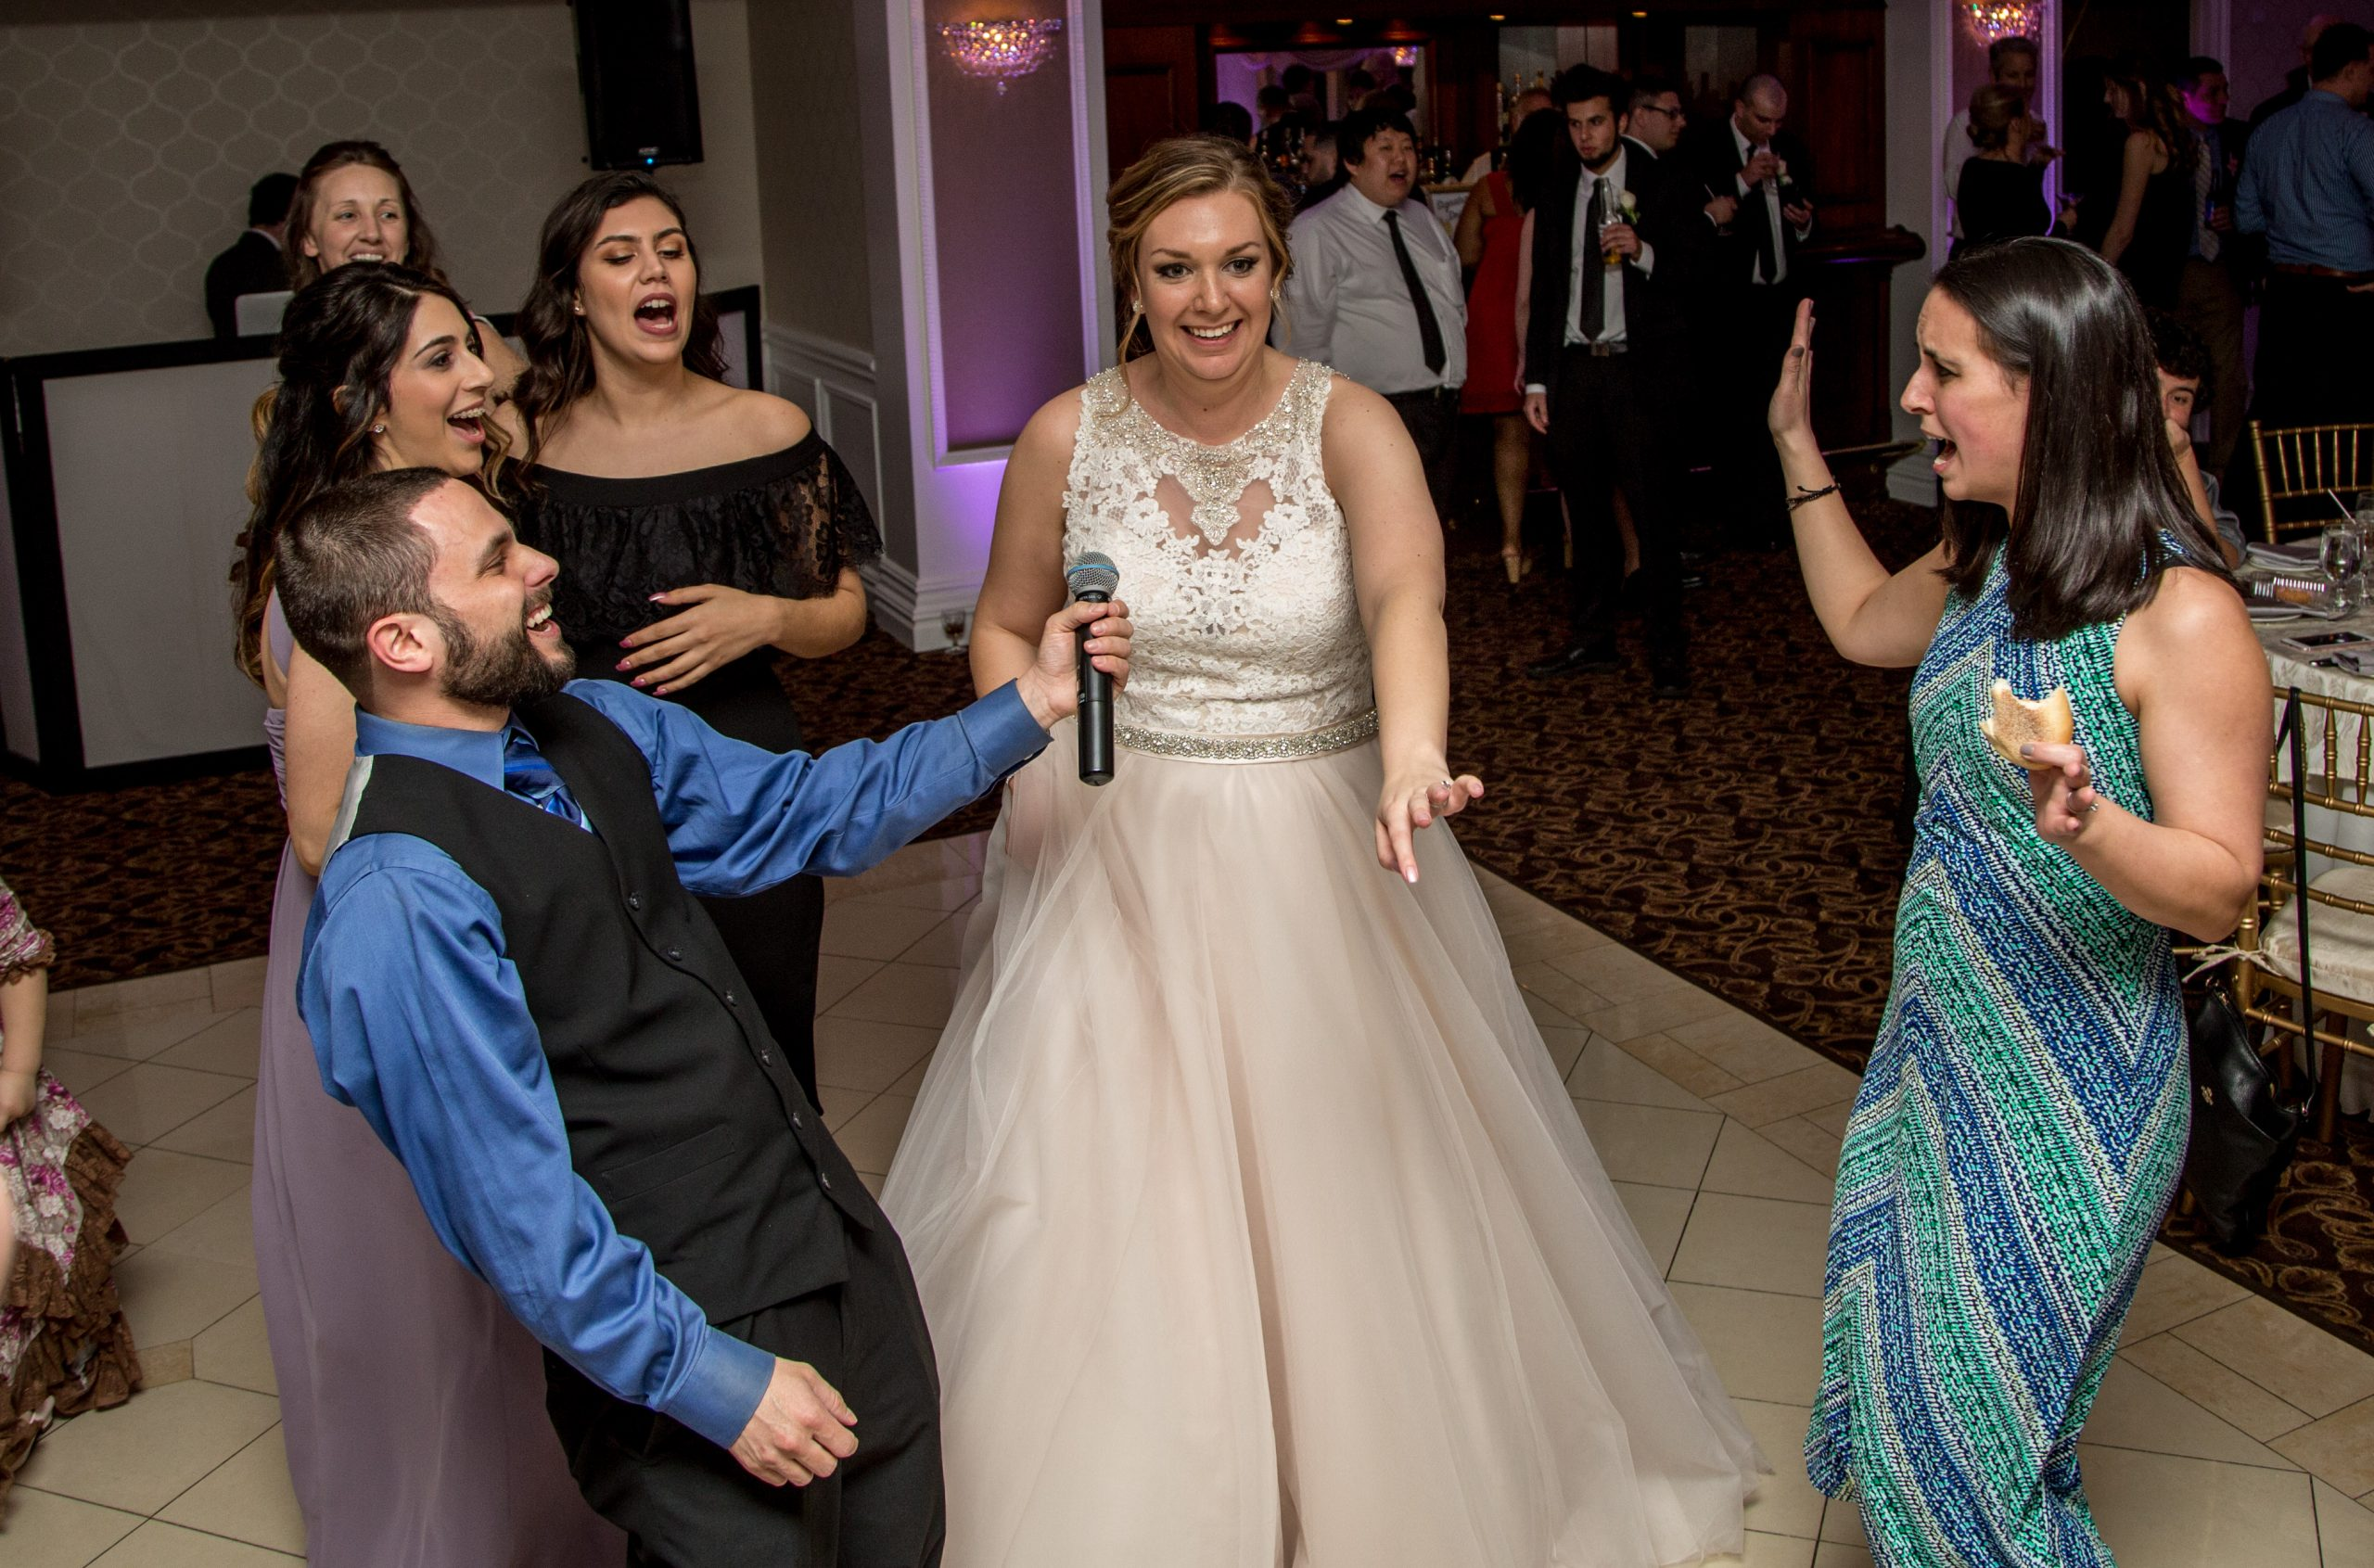 Elite Entertainment_ NJWedding_ EliteDigitalImages_EnglishManor_Laura and Joseph Dan Fumosa2